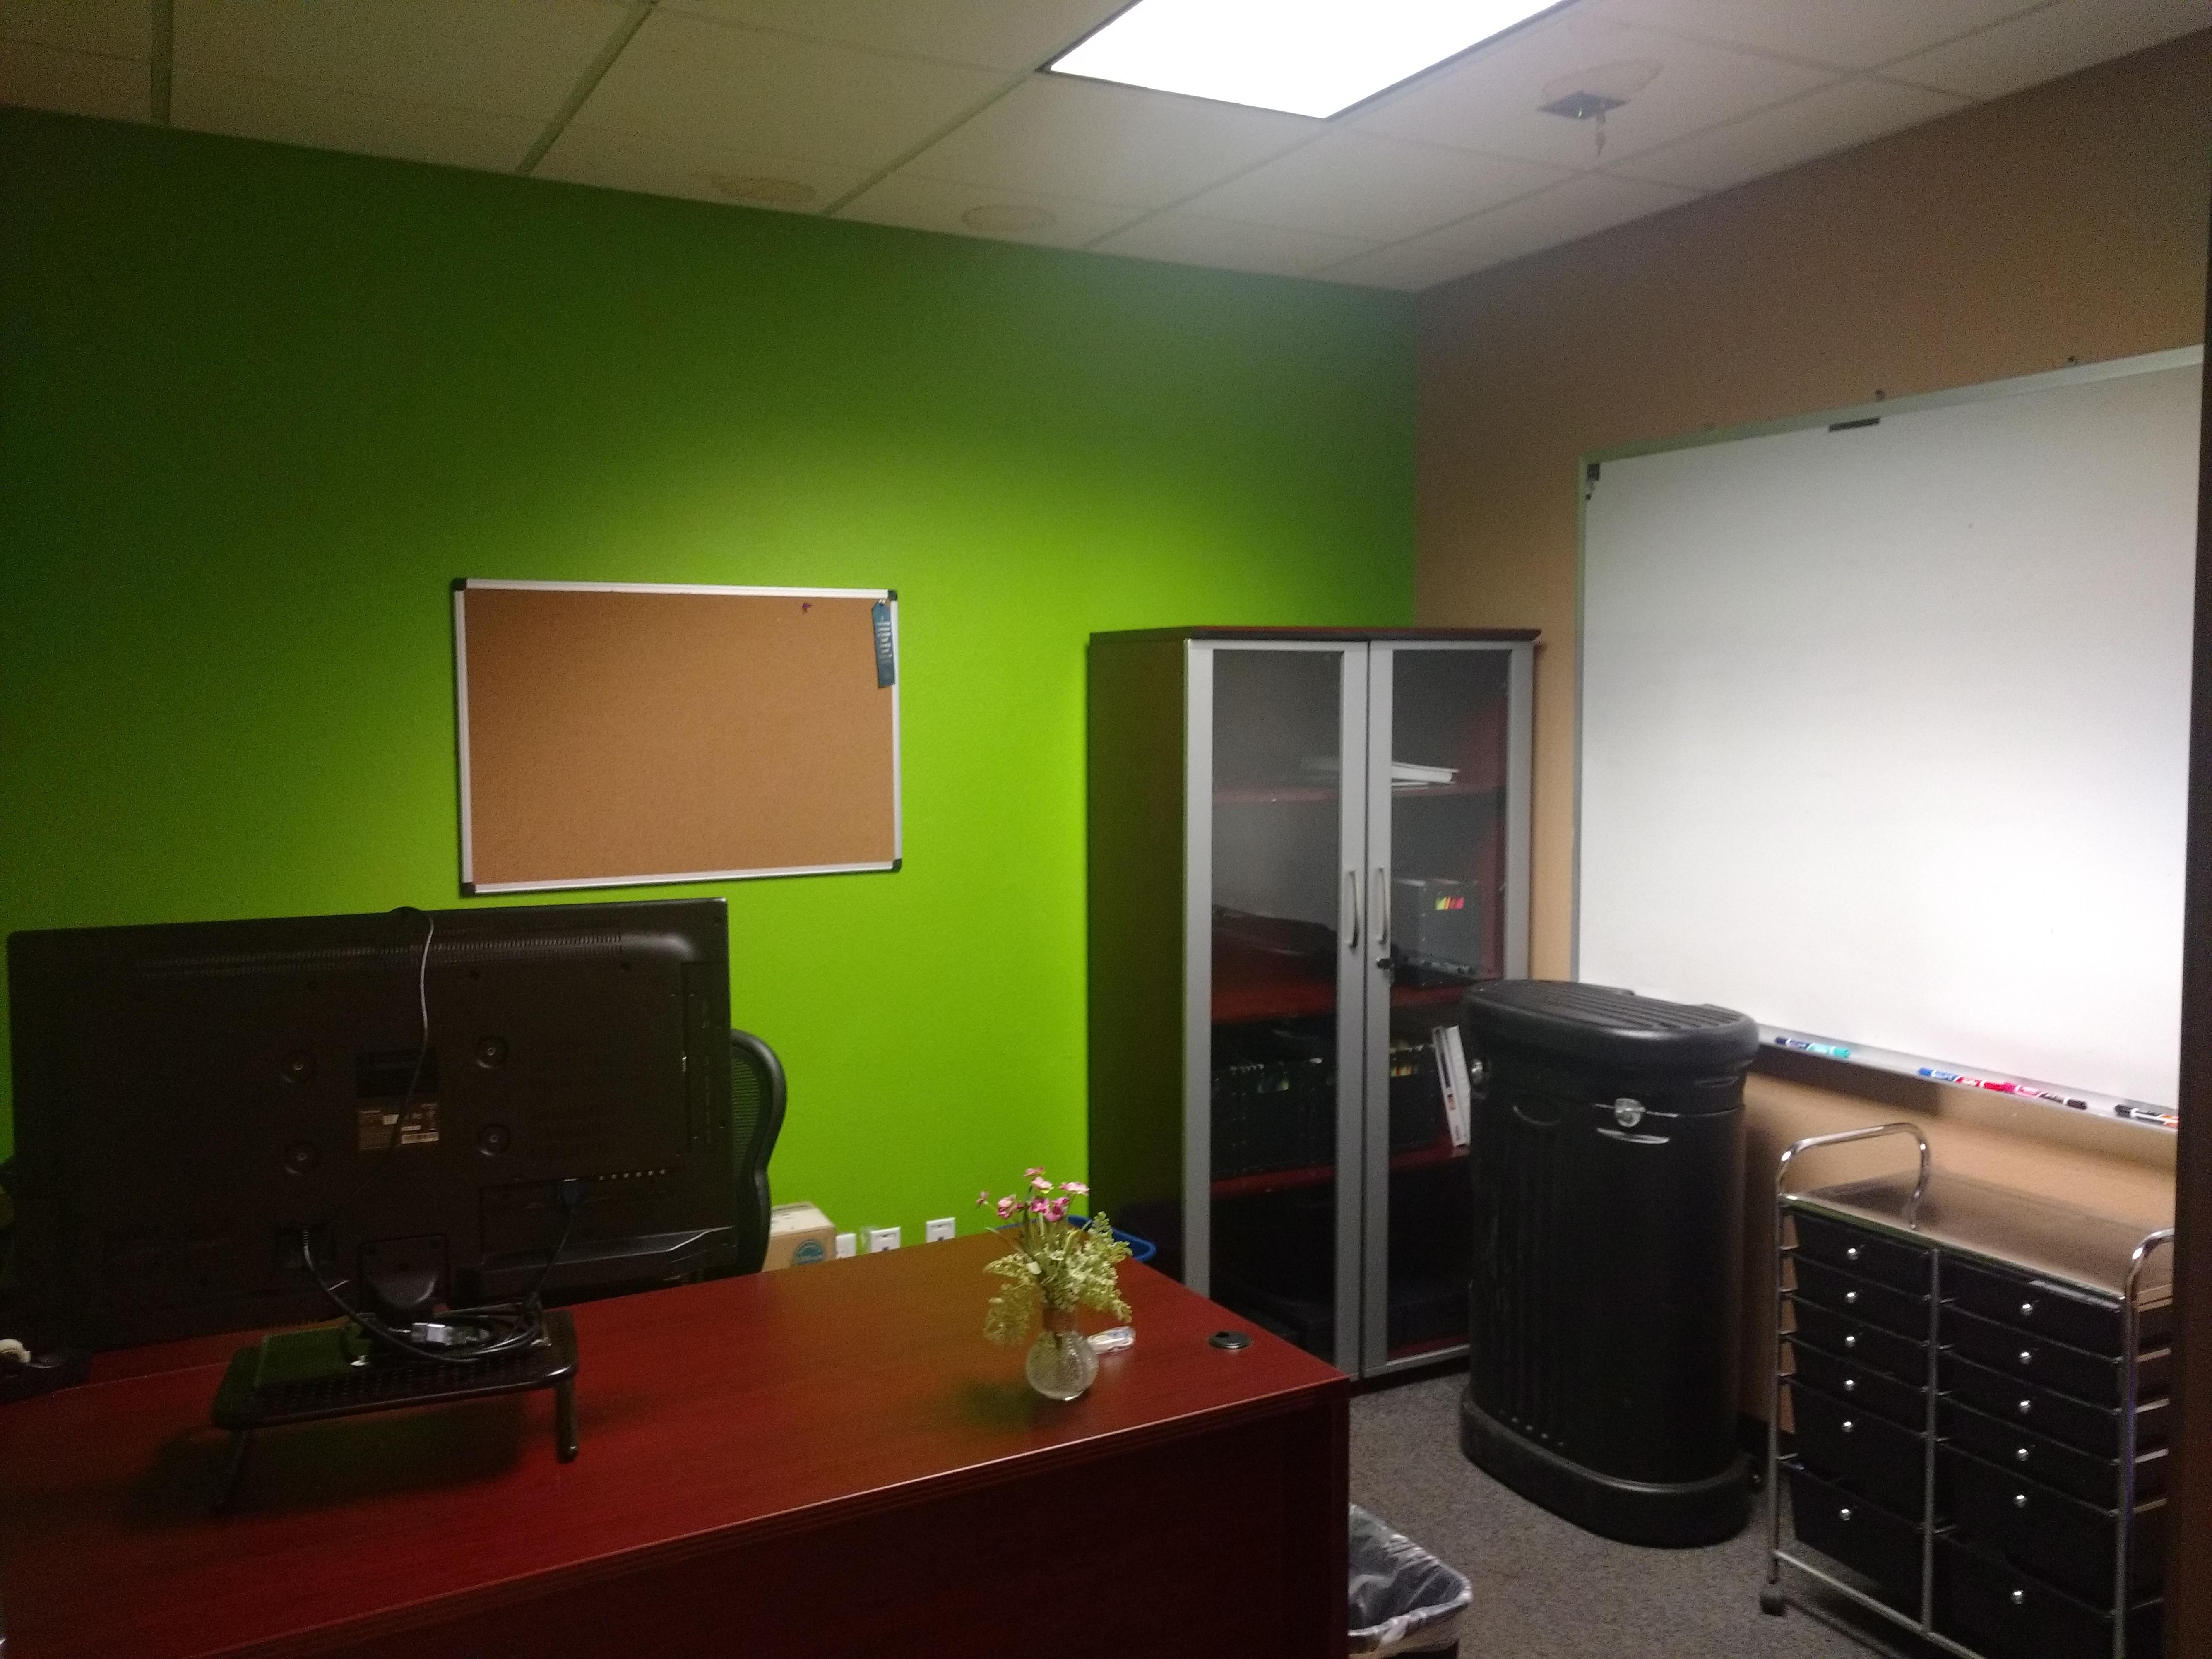 Fortis Networks, Inc - HUB Zone - Private Offices 4 of 4 available